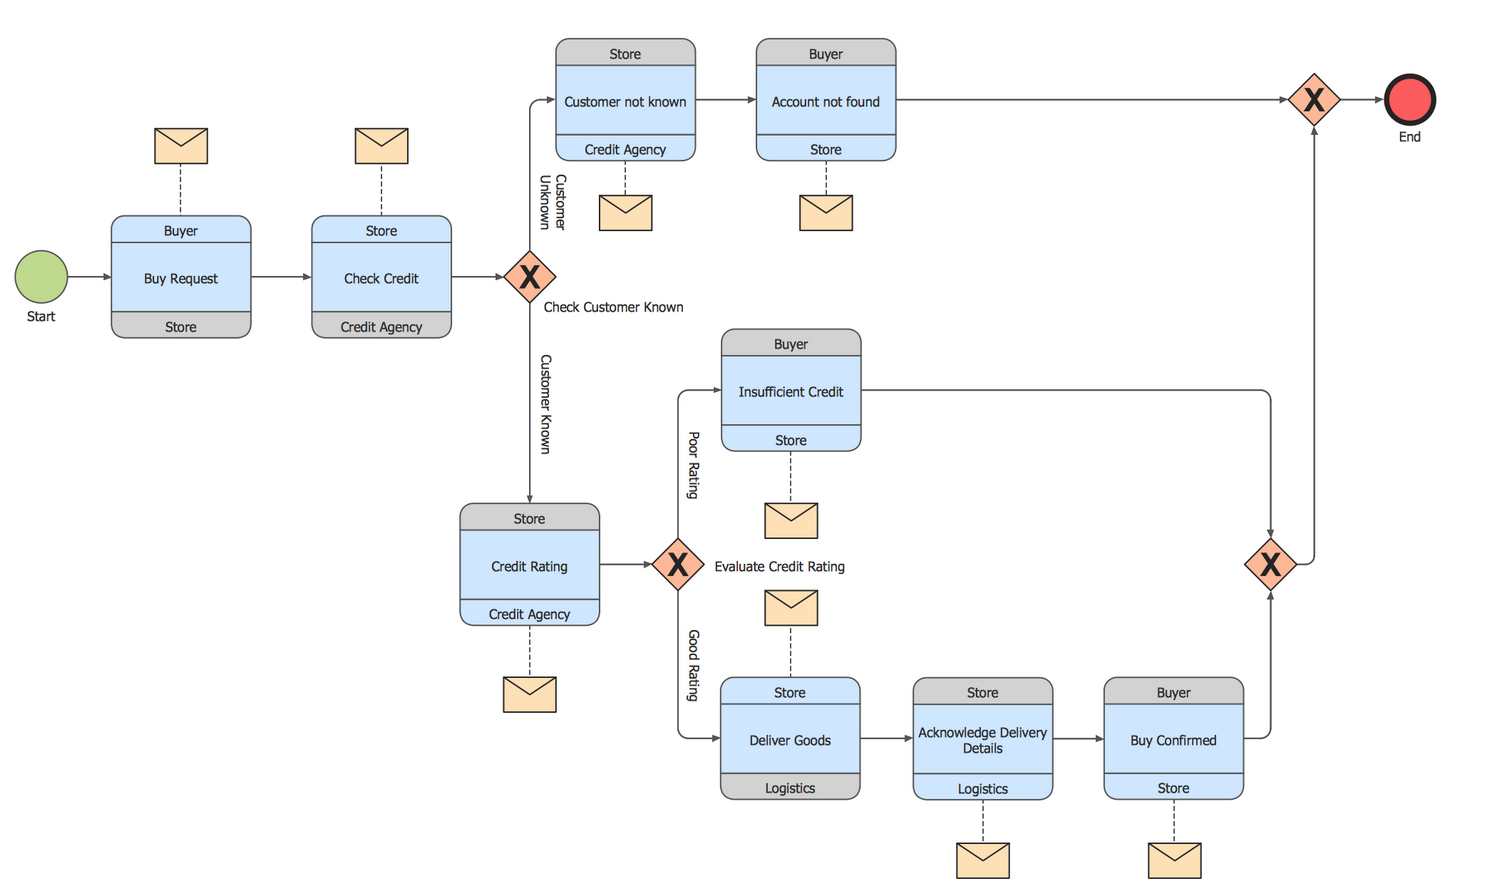 BPMN 2.0 Diagram — Logistics Choreography